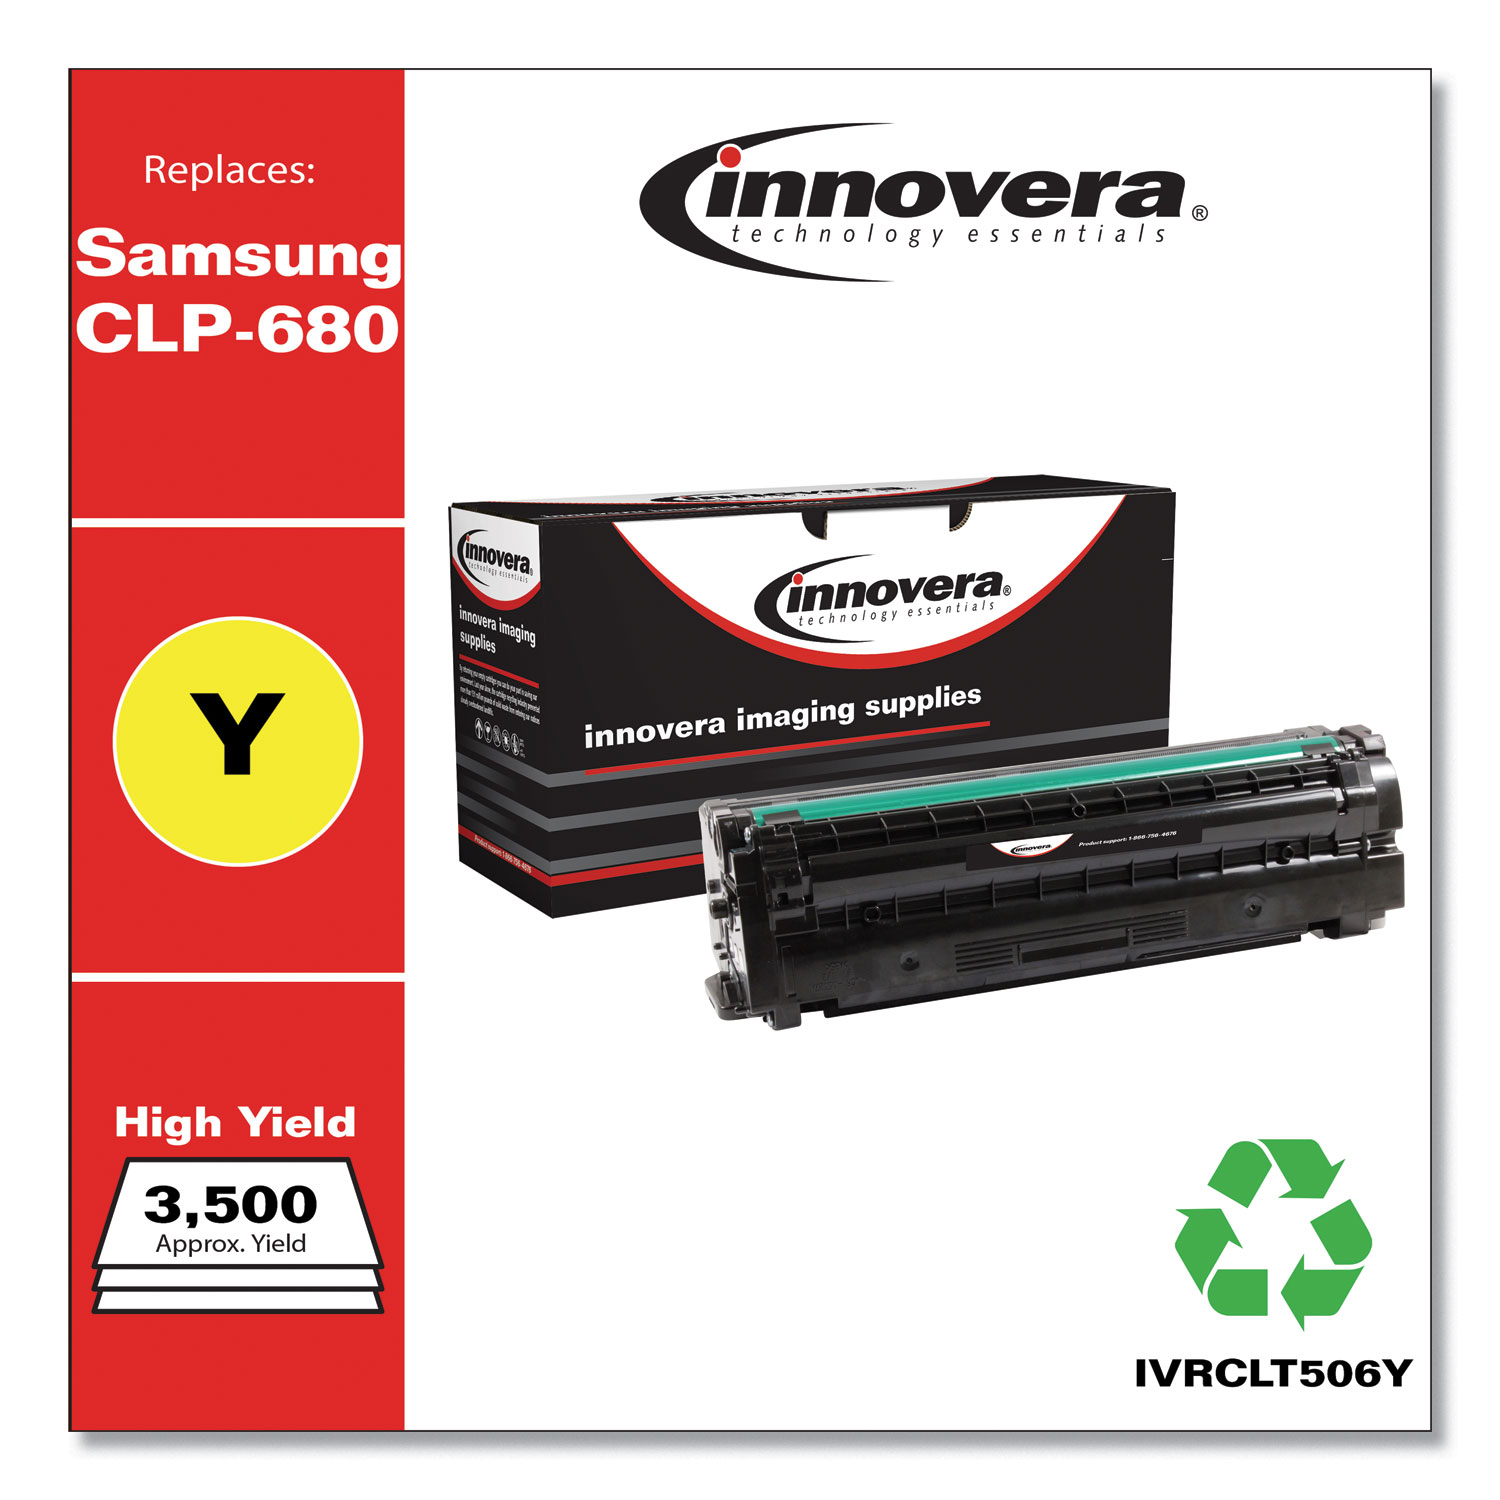 Remanufactured Yellow High-Yield Toner, Replacement for Samsung CLT-506 (CLT-Y506L), 3,500 Page-Yield IVRCLT506Y